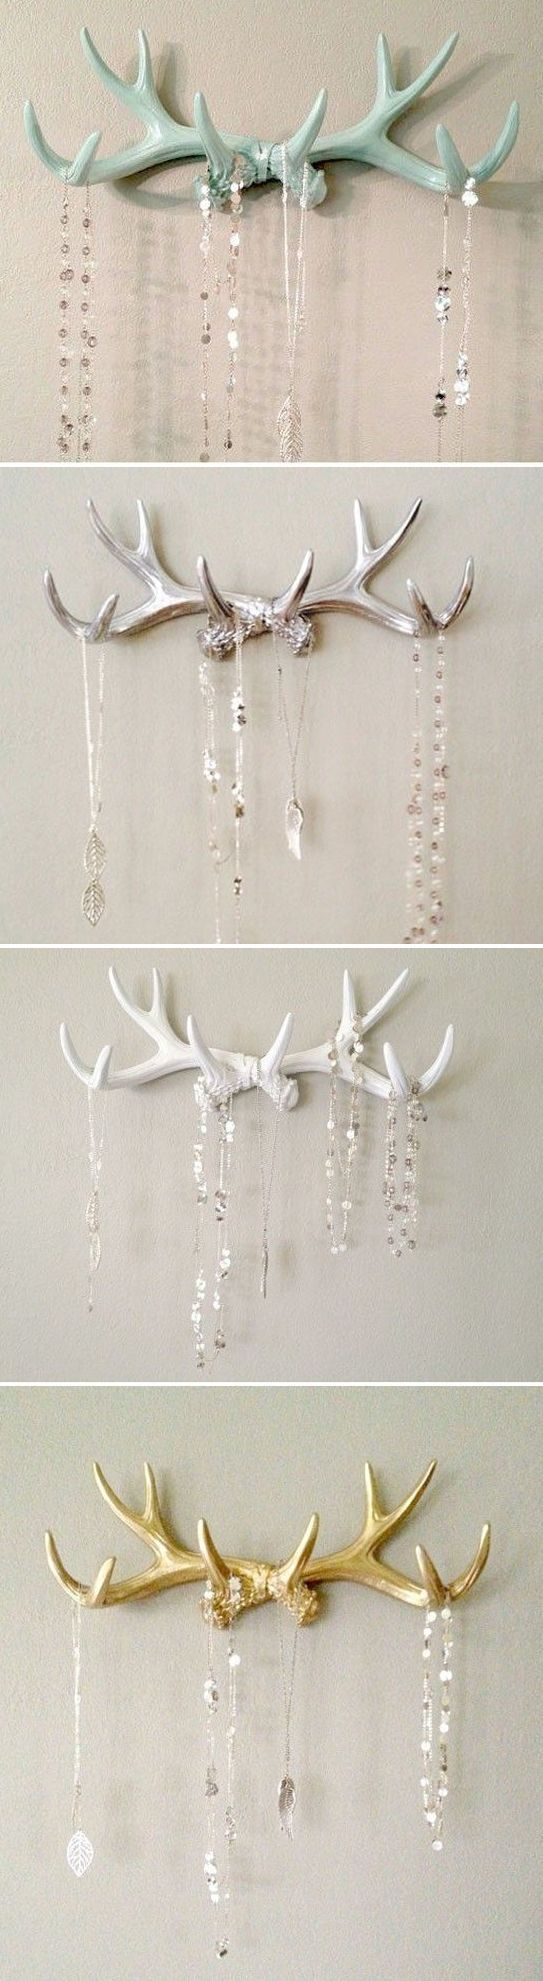 Deko Schlafzimmer Gold Antlers In Mint Silver White And Gold For The Home Crafts